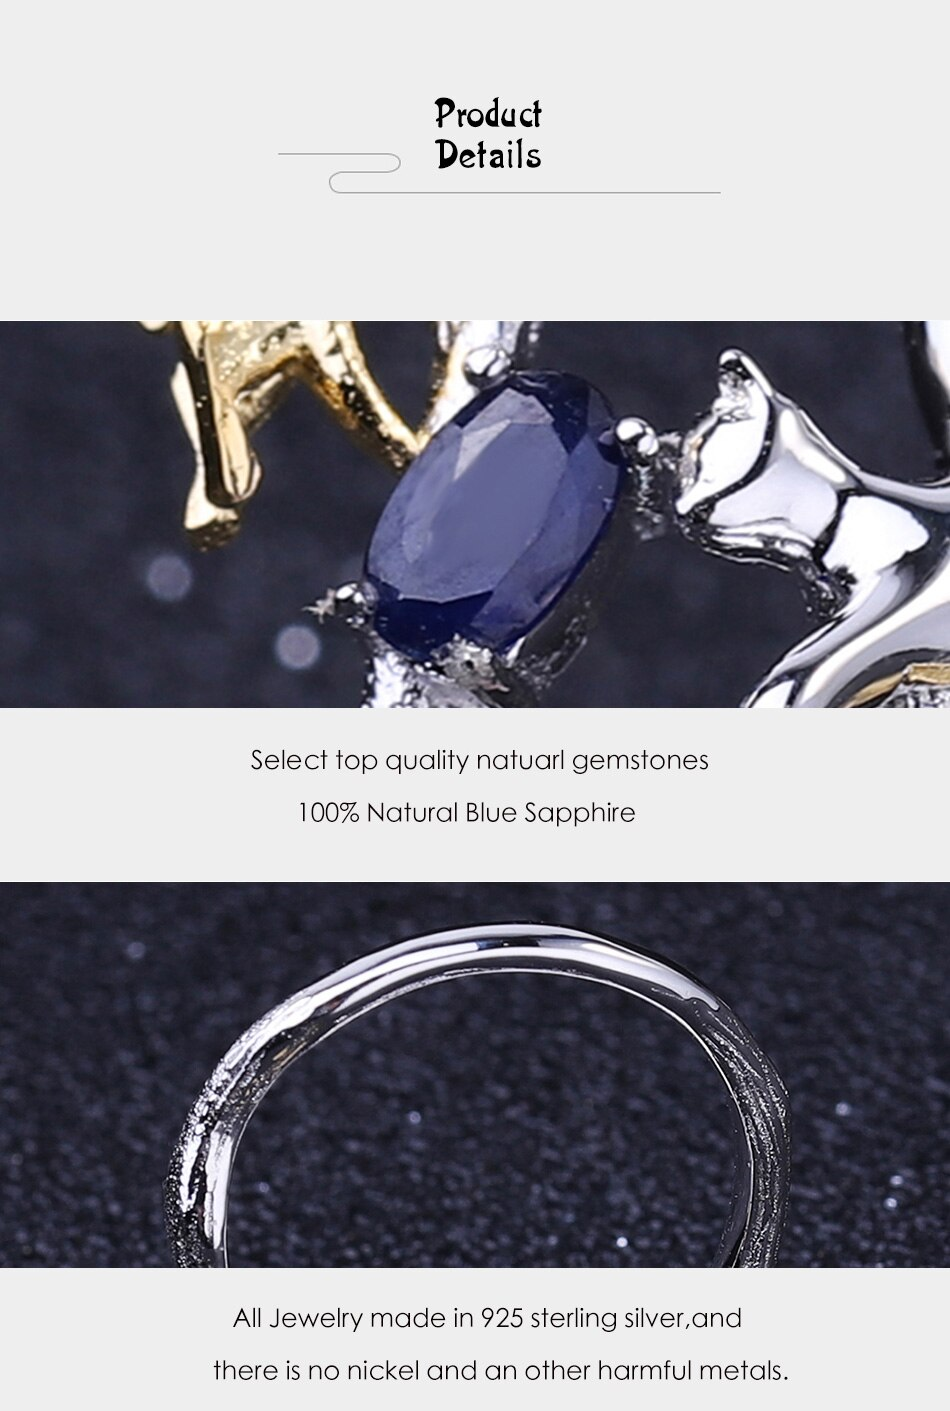 GEM'S BALLET Real 925 Sterling Silver Adjustable Open Ring 0.30Ct Natural Blue Sapphire Cat & butterfly Rings for Women Jewelry